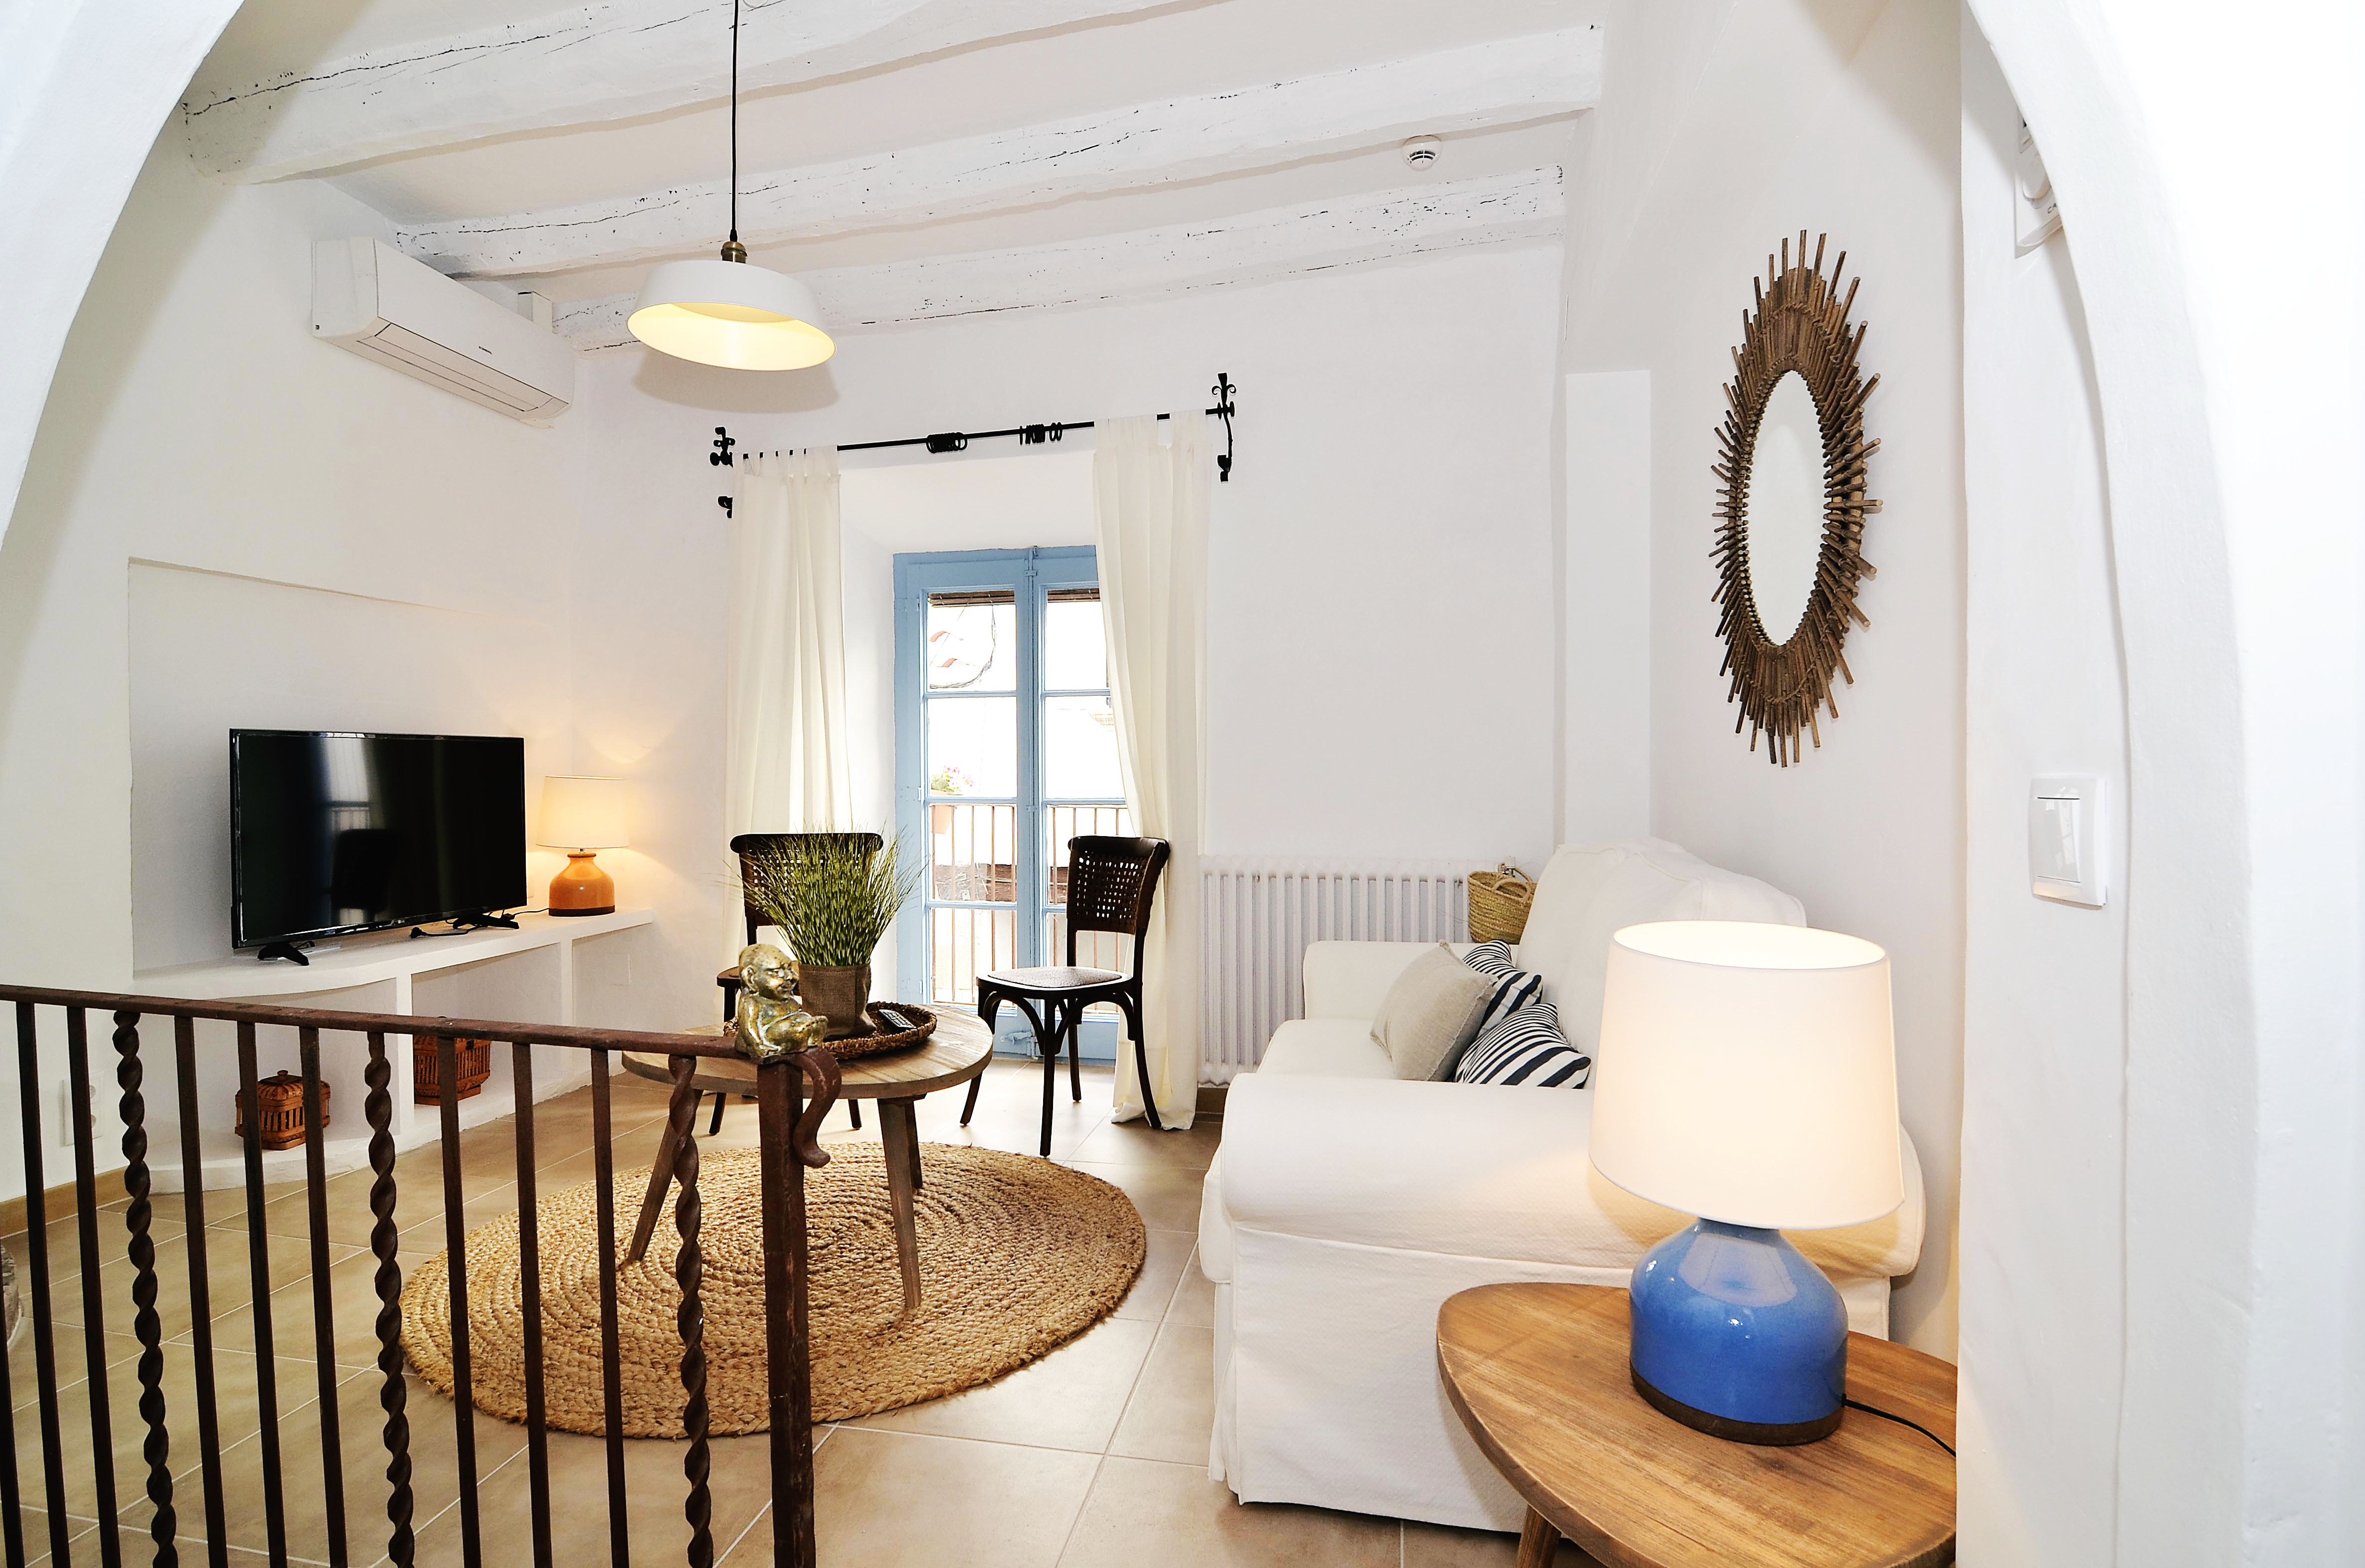 House tour: old fisherman's house in Sitges: sitting room